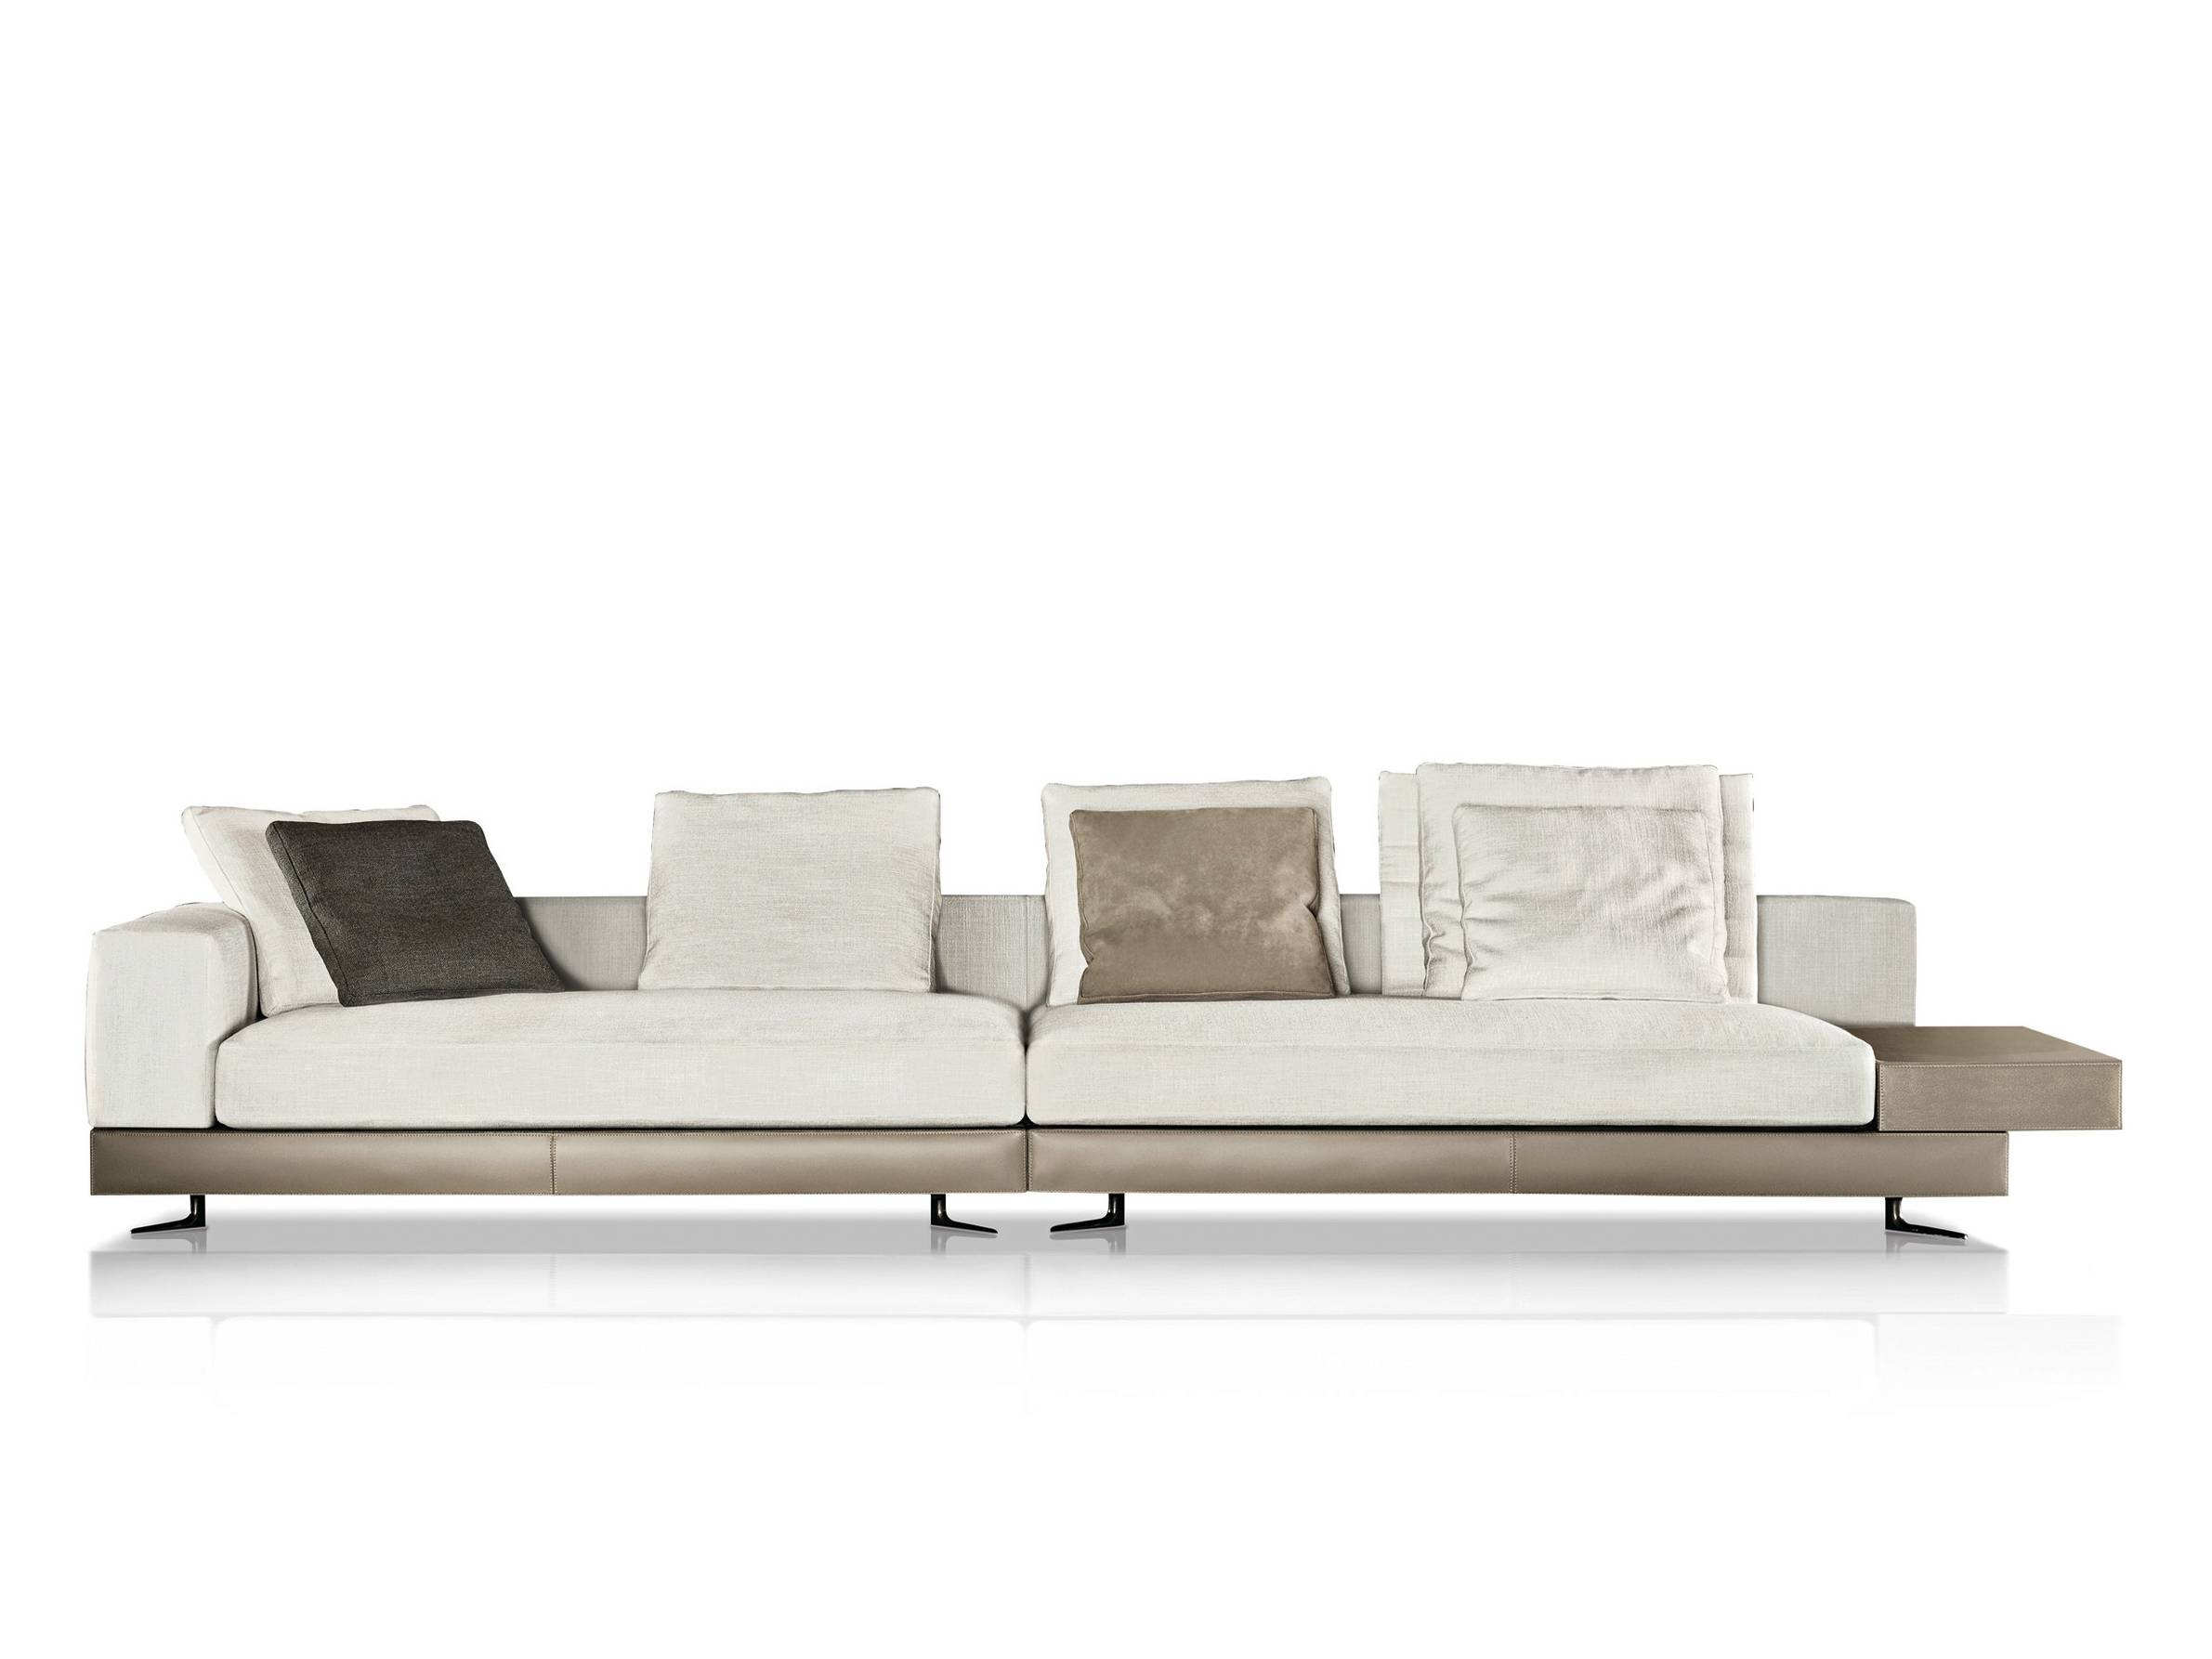 Sofas With Removable Cover | Archiproducts with regard to Sofa With Removable Cover (Image 26 of 30)